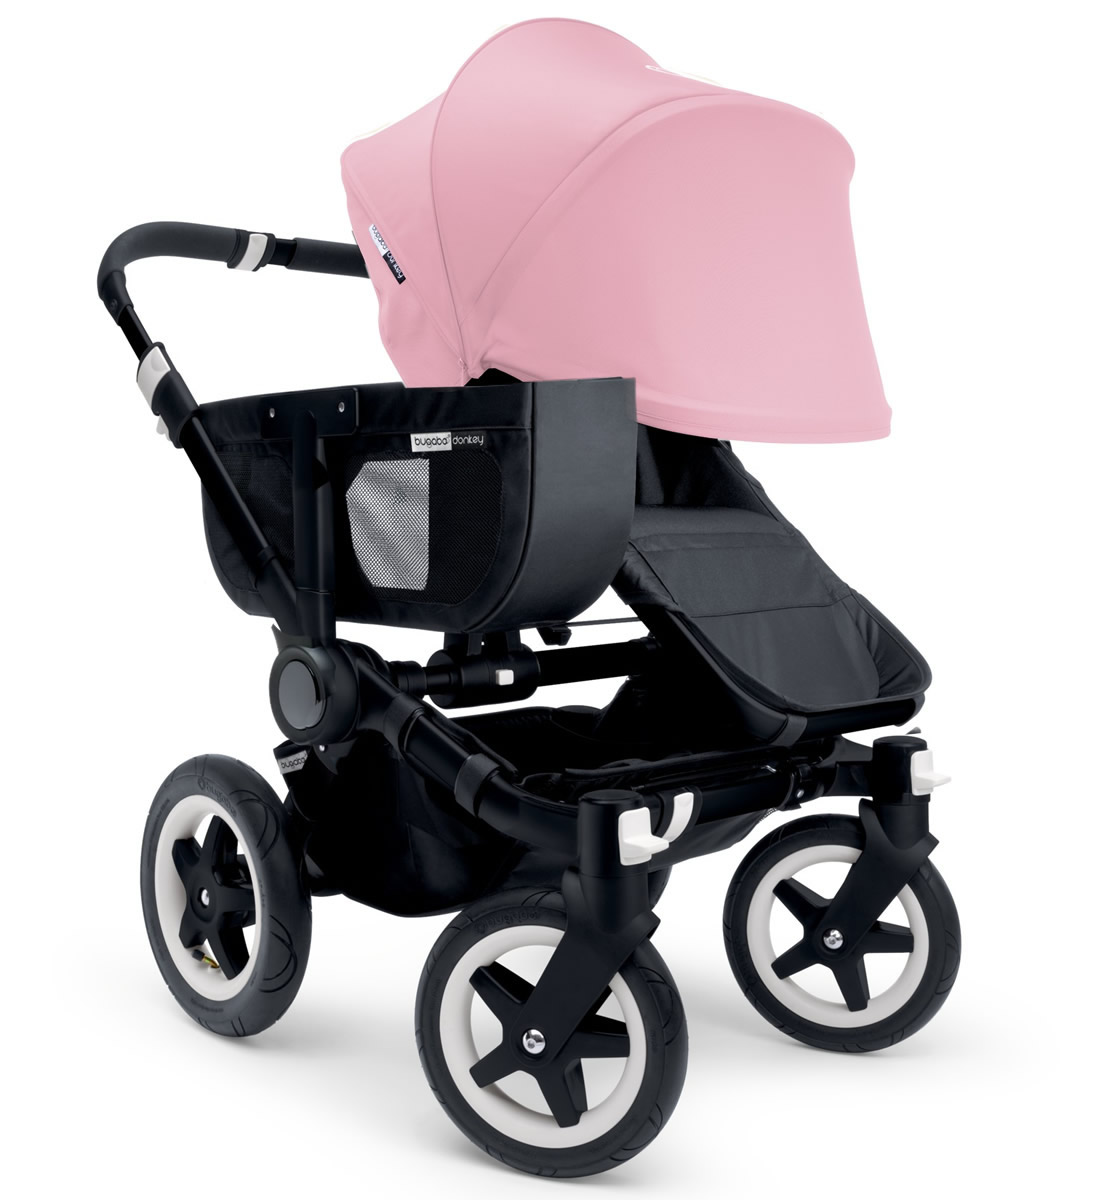 Bugaboo Donkey Mono Stroller, Extendable Canopy - 2015 - All Black/Soft Pink